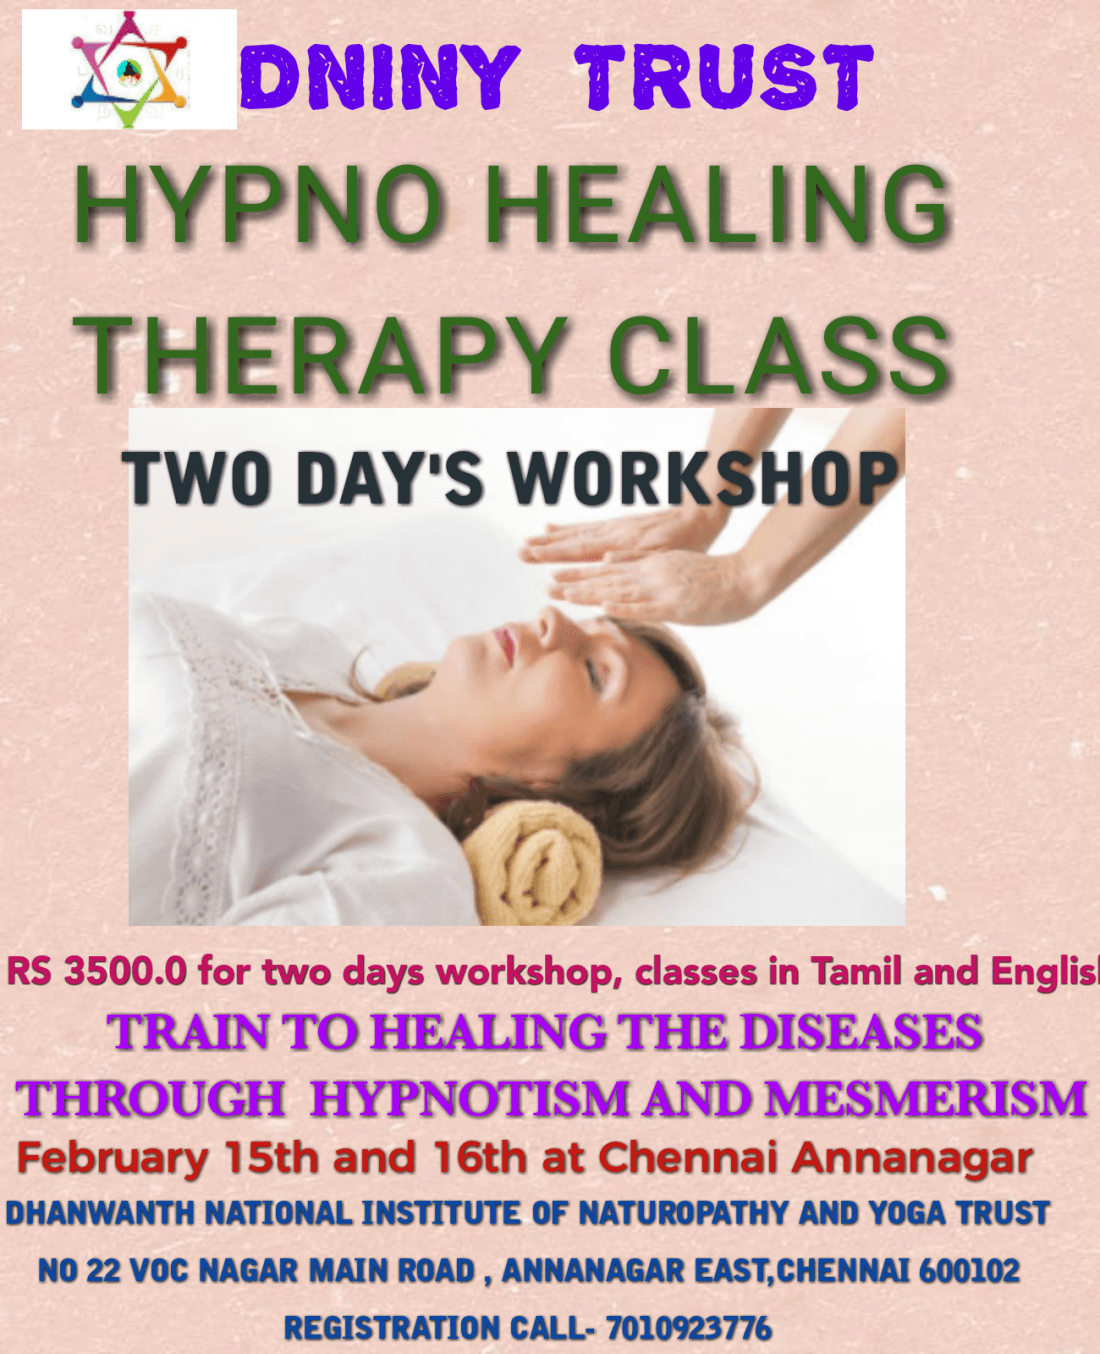 Hypno healing therapy